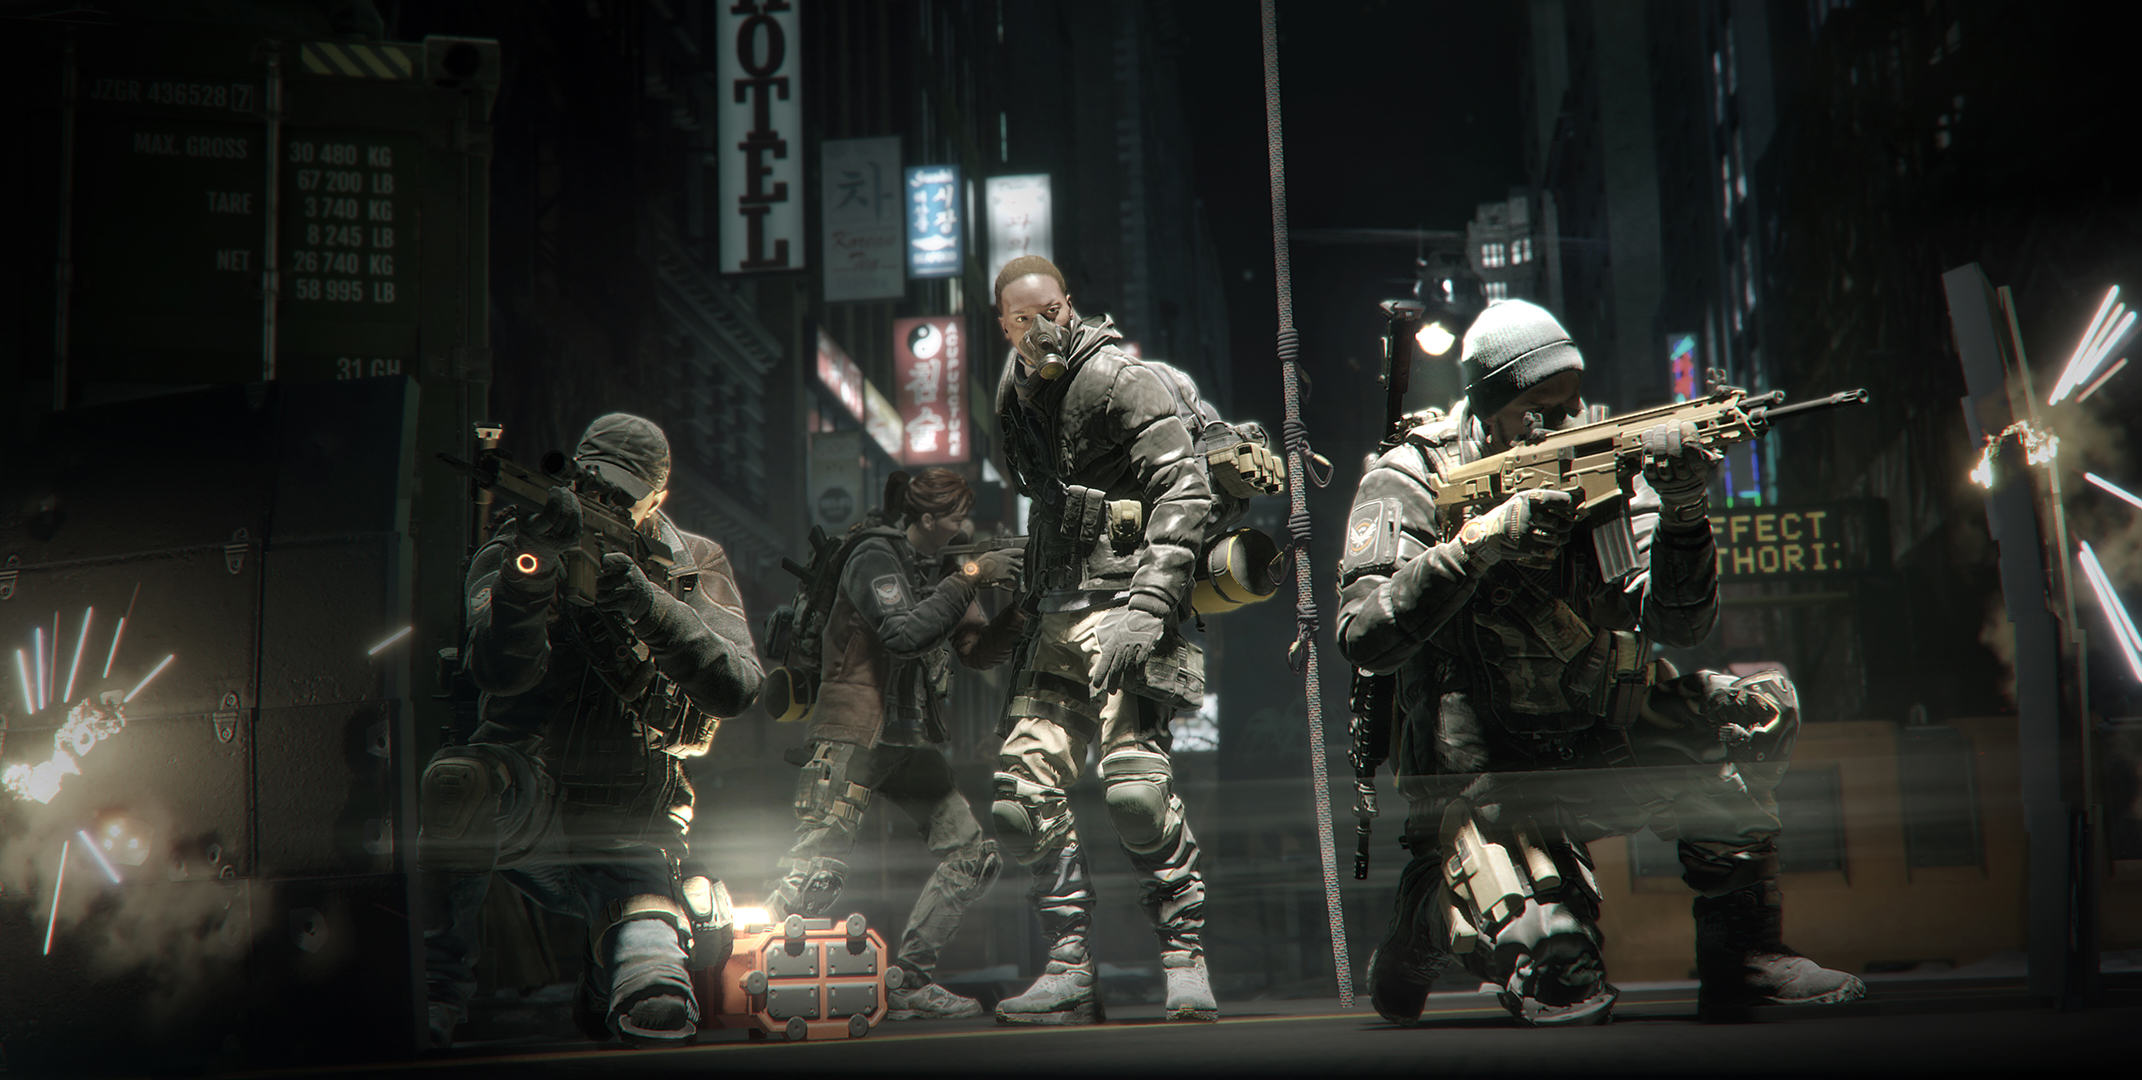 TCTD 1601 web screenshot team formation We Had An Exclusive Look At The Division Ahead Of Release Day